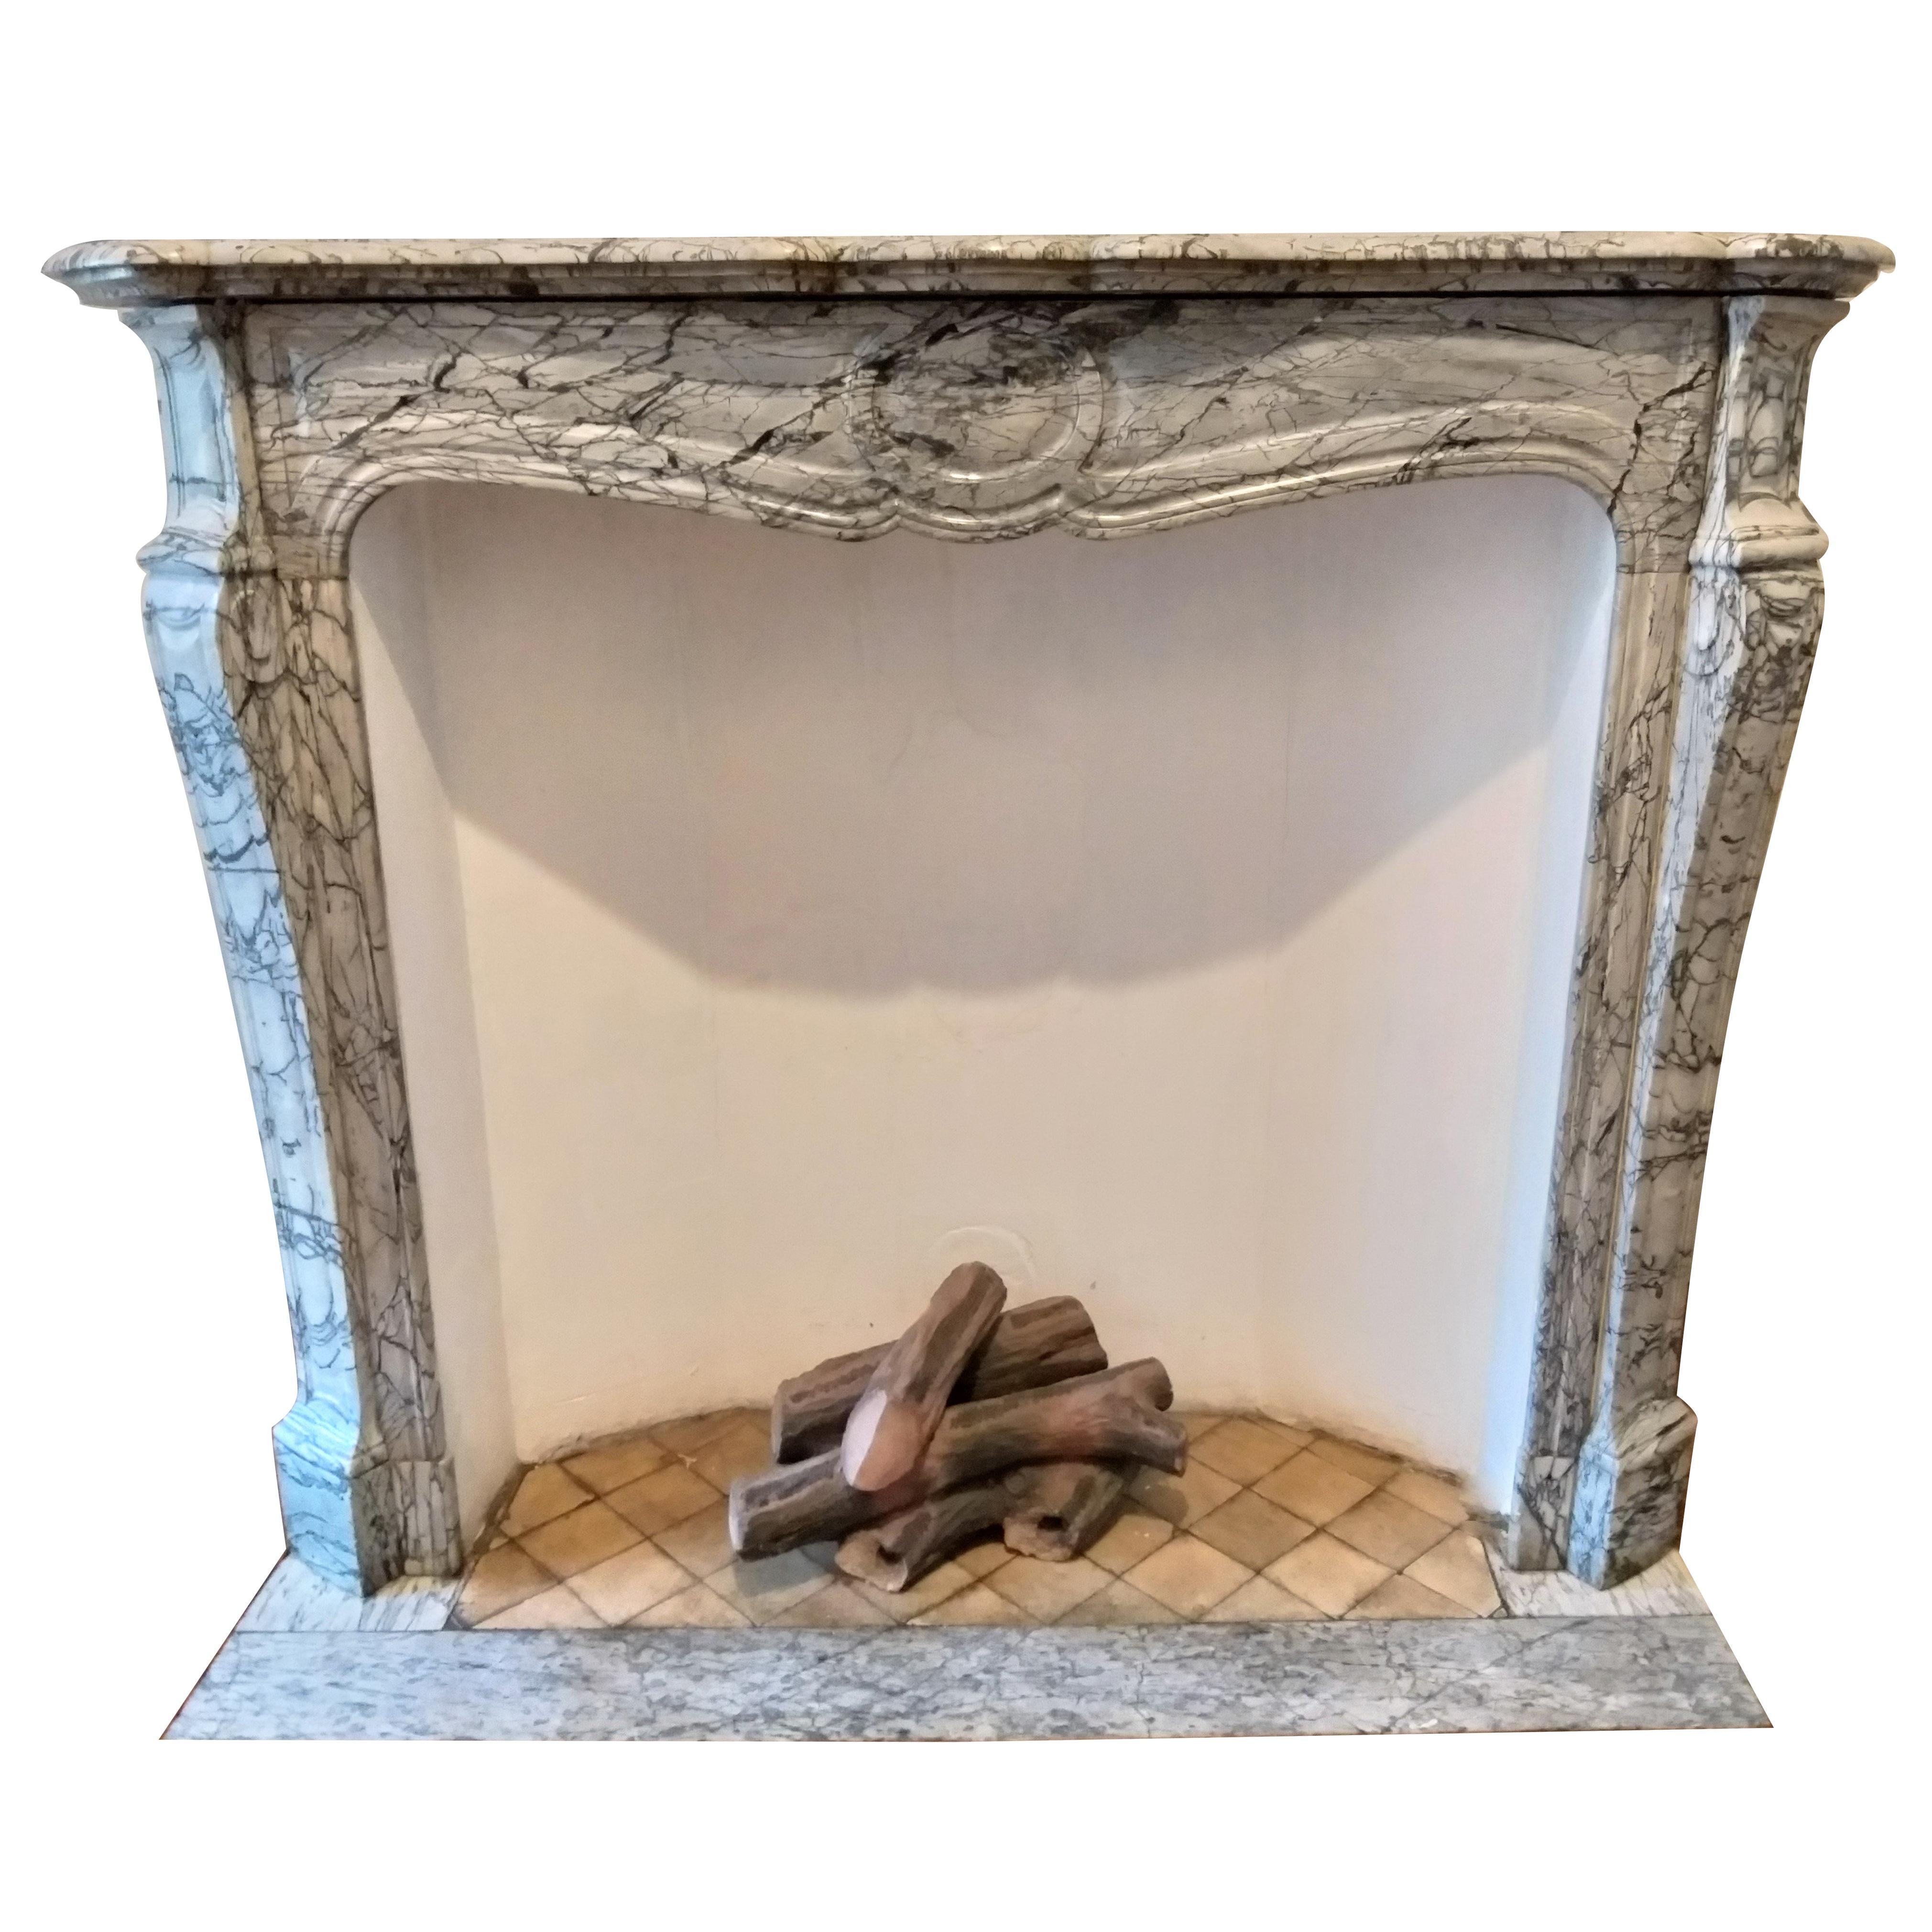 6 Ft Fireplace Mantel Antique And Vintage Fireplaces And Mantels 4 859 For Sale At 1stdibs